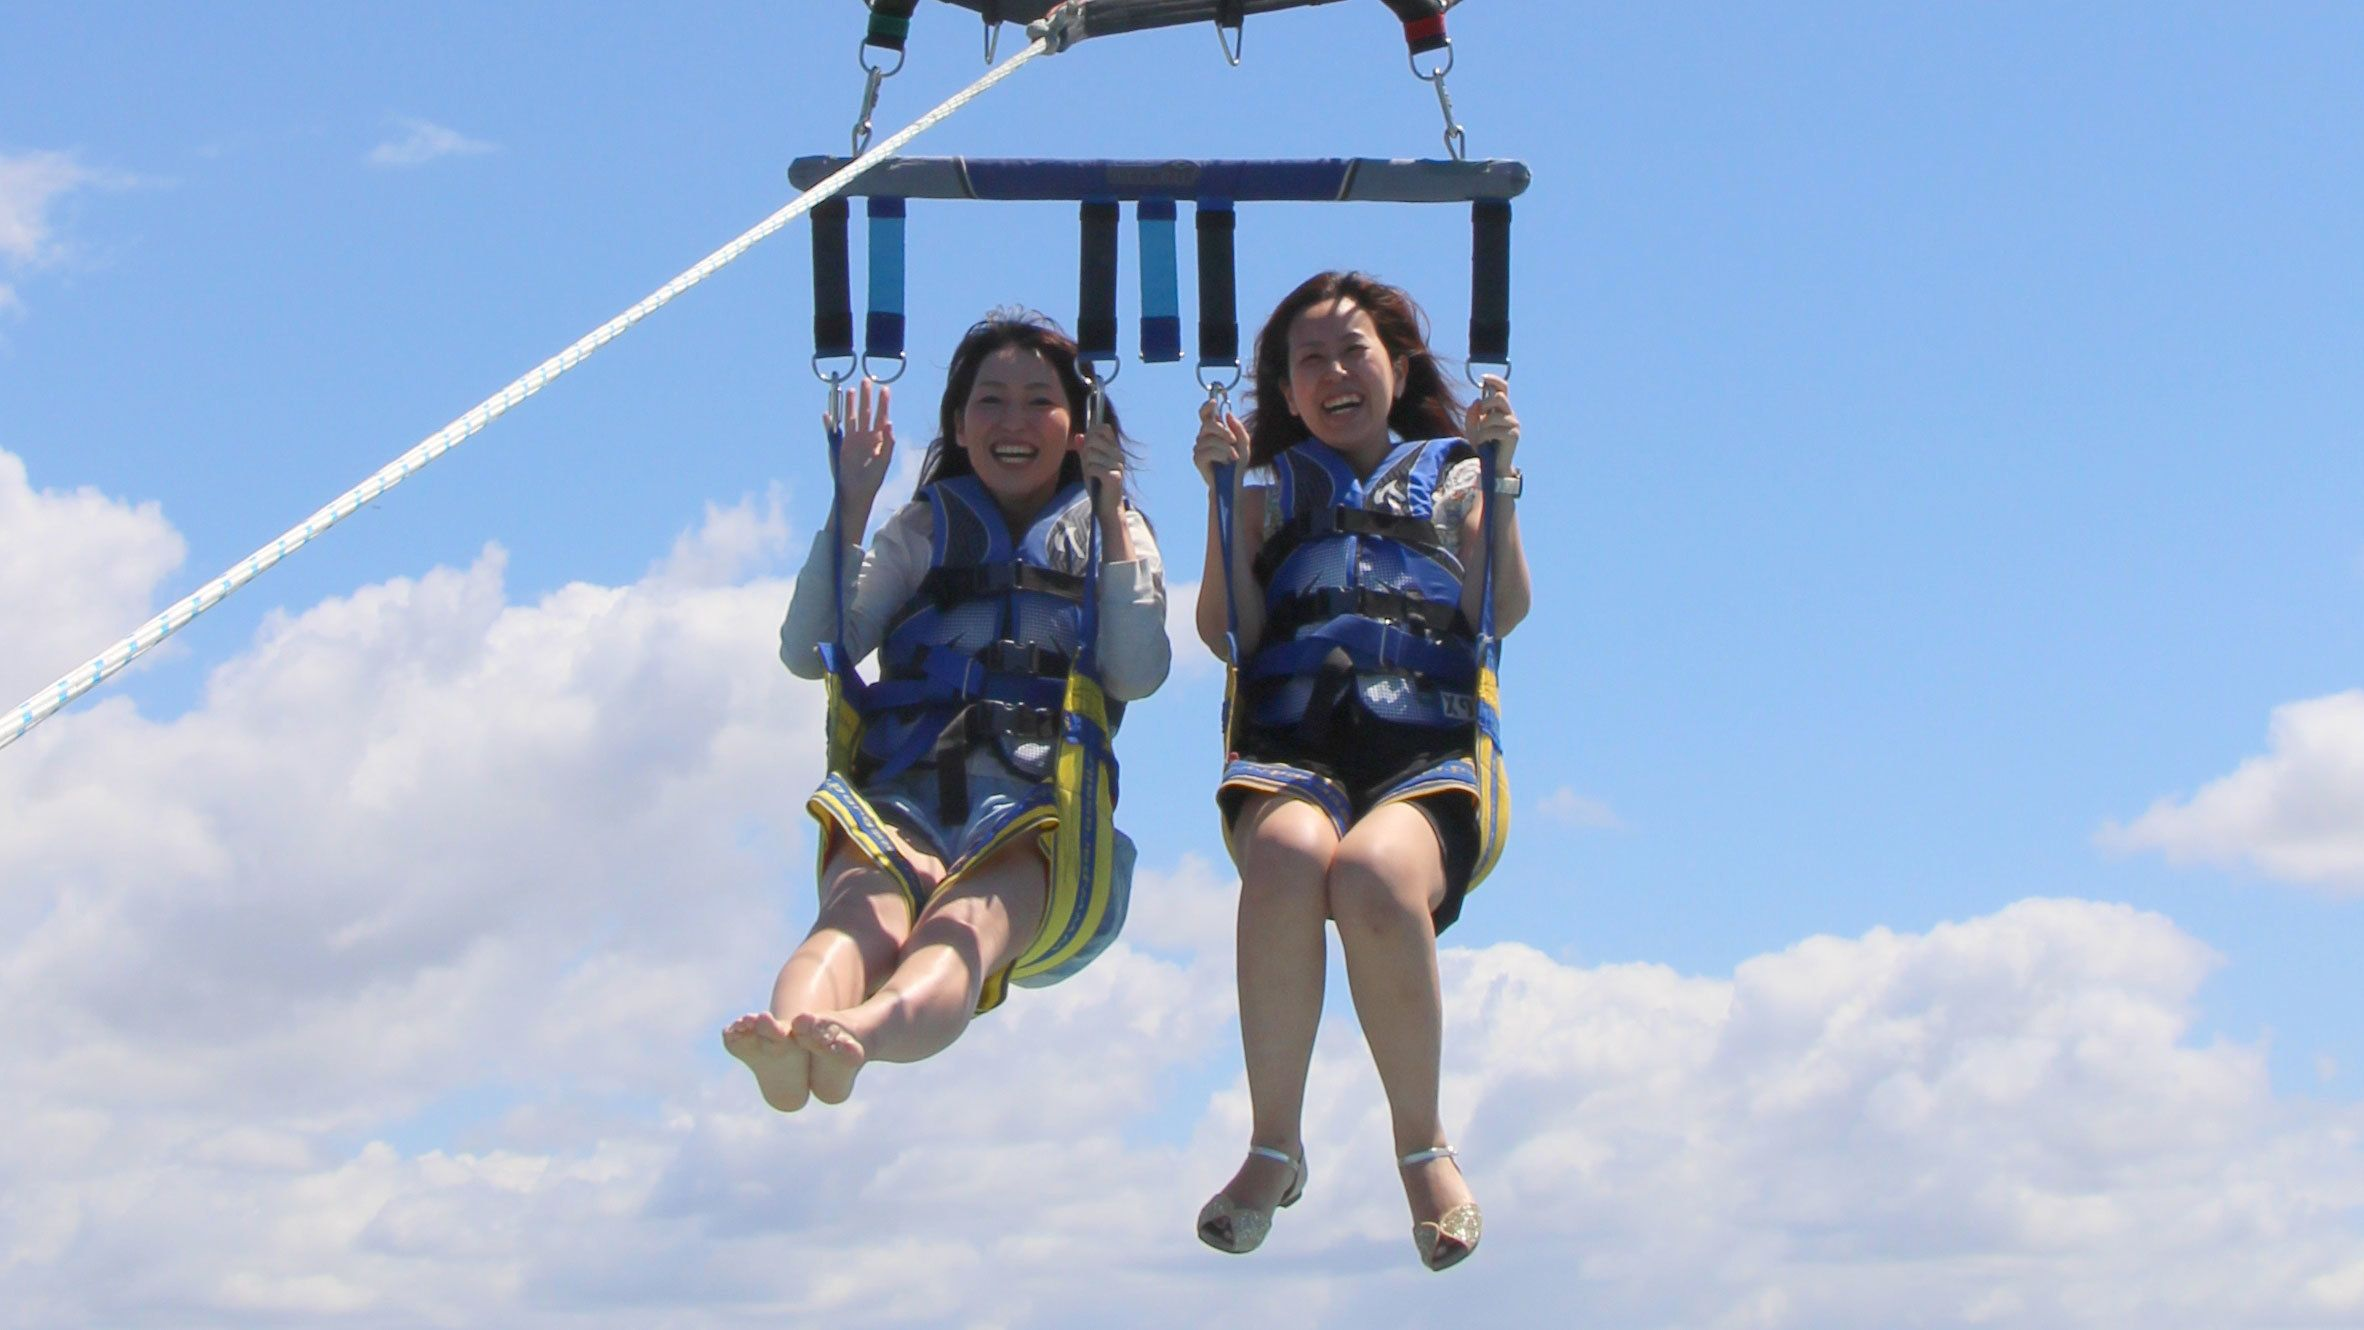 Two girls on the Gold Coast Parasailing